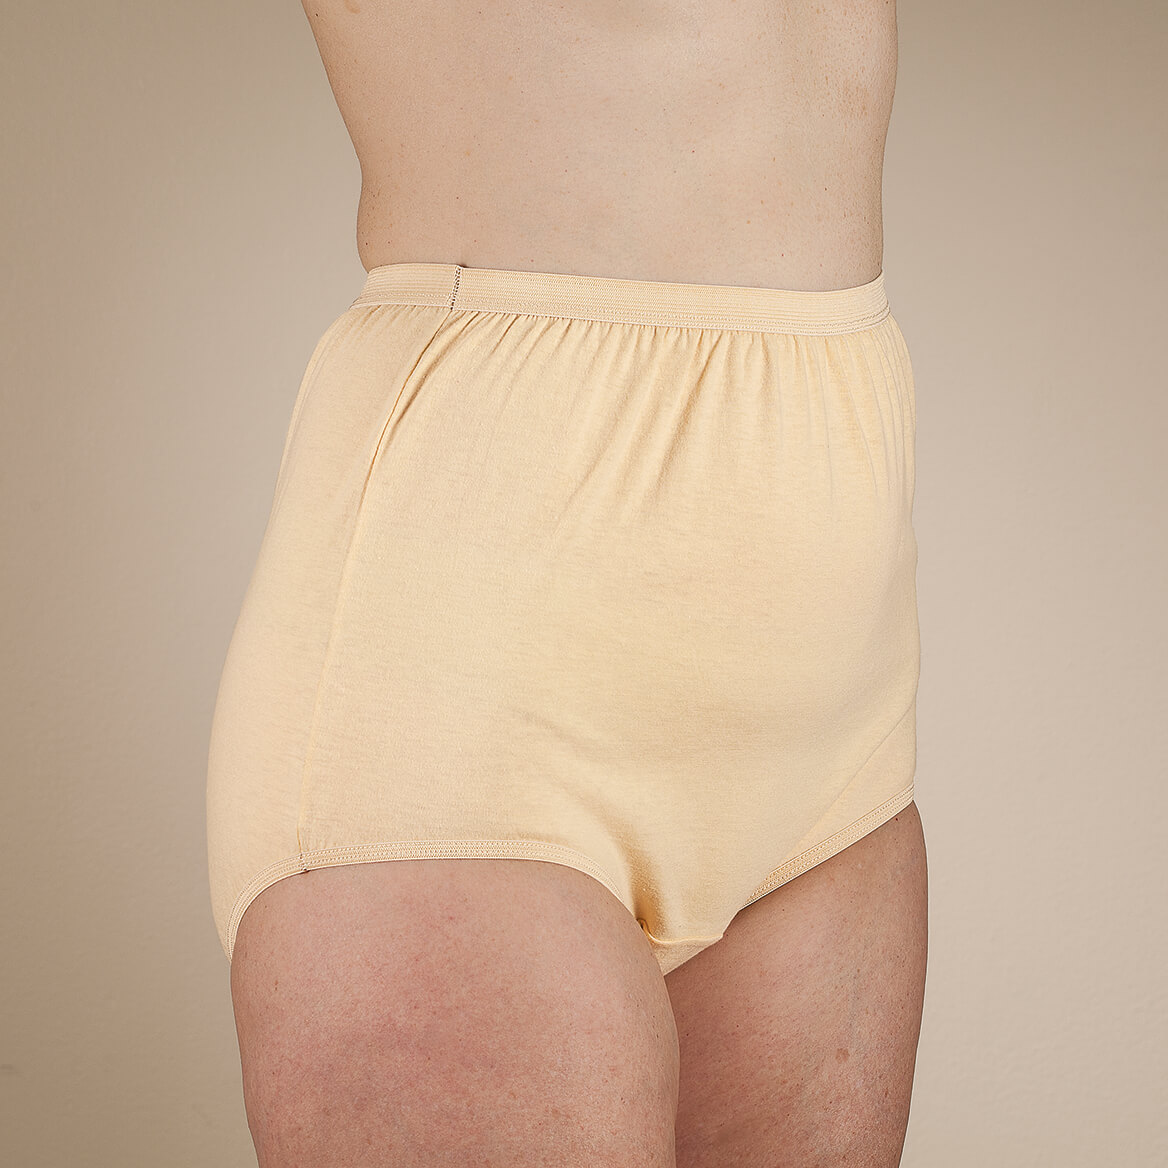 Easy Comforts Style™ Classic Cotton Briefs, 4 Pack-364814